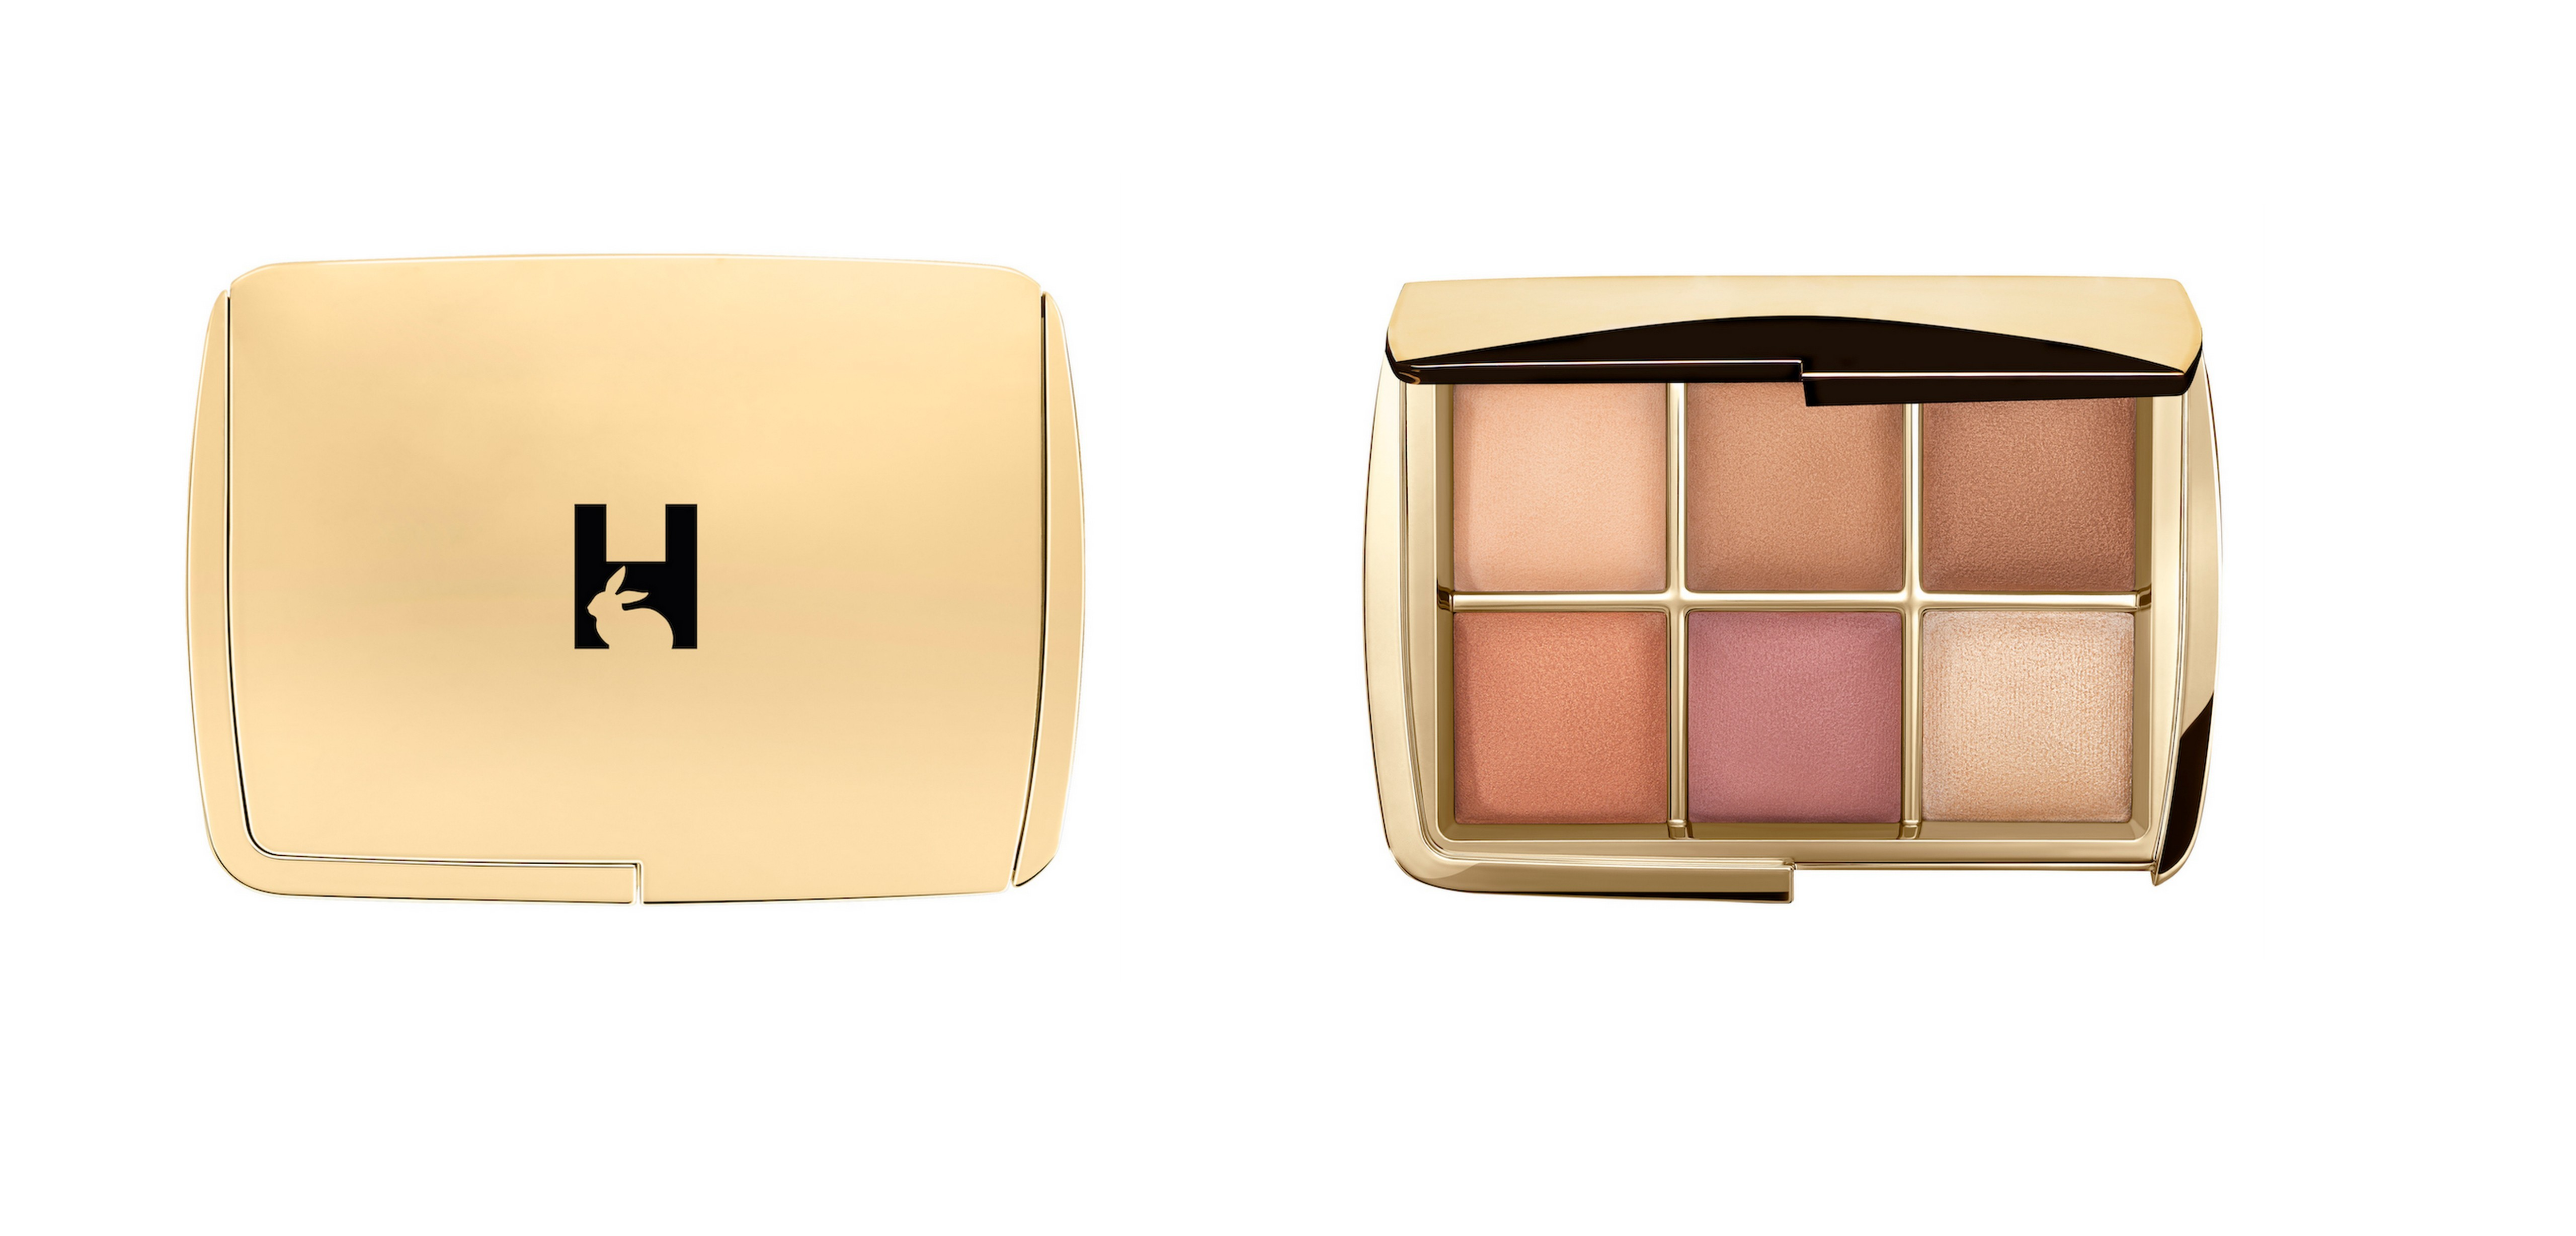 We're in love with this cruelty-conscious new Ambient Lighting Edit palette